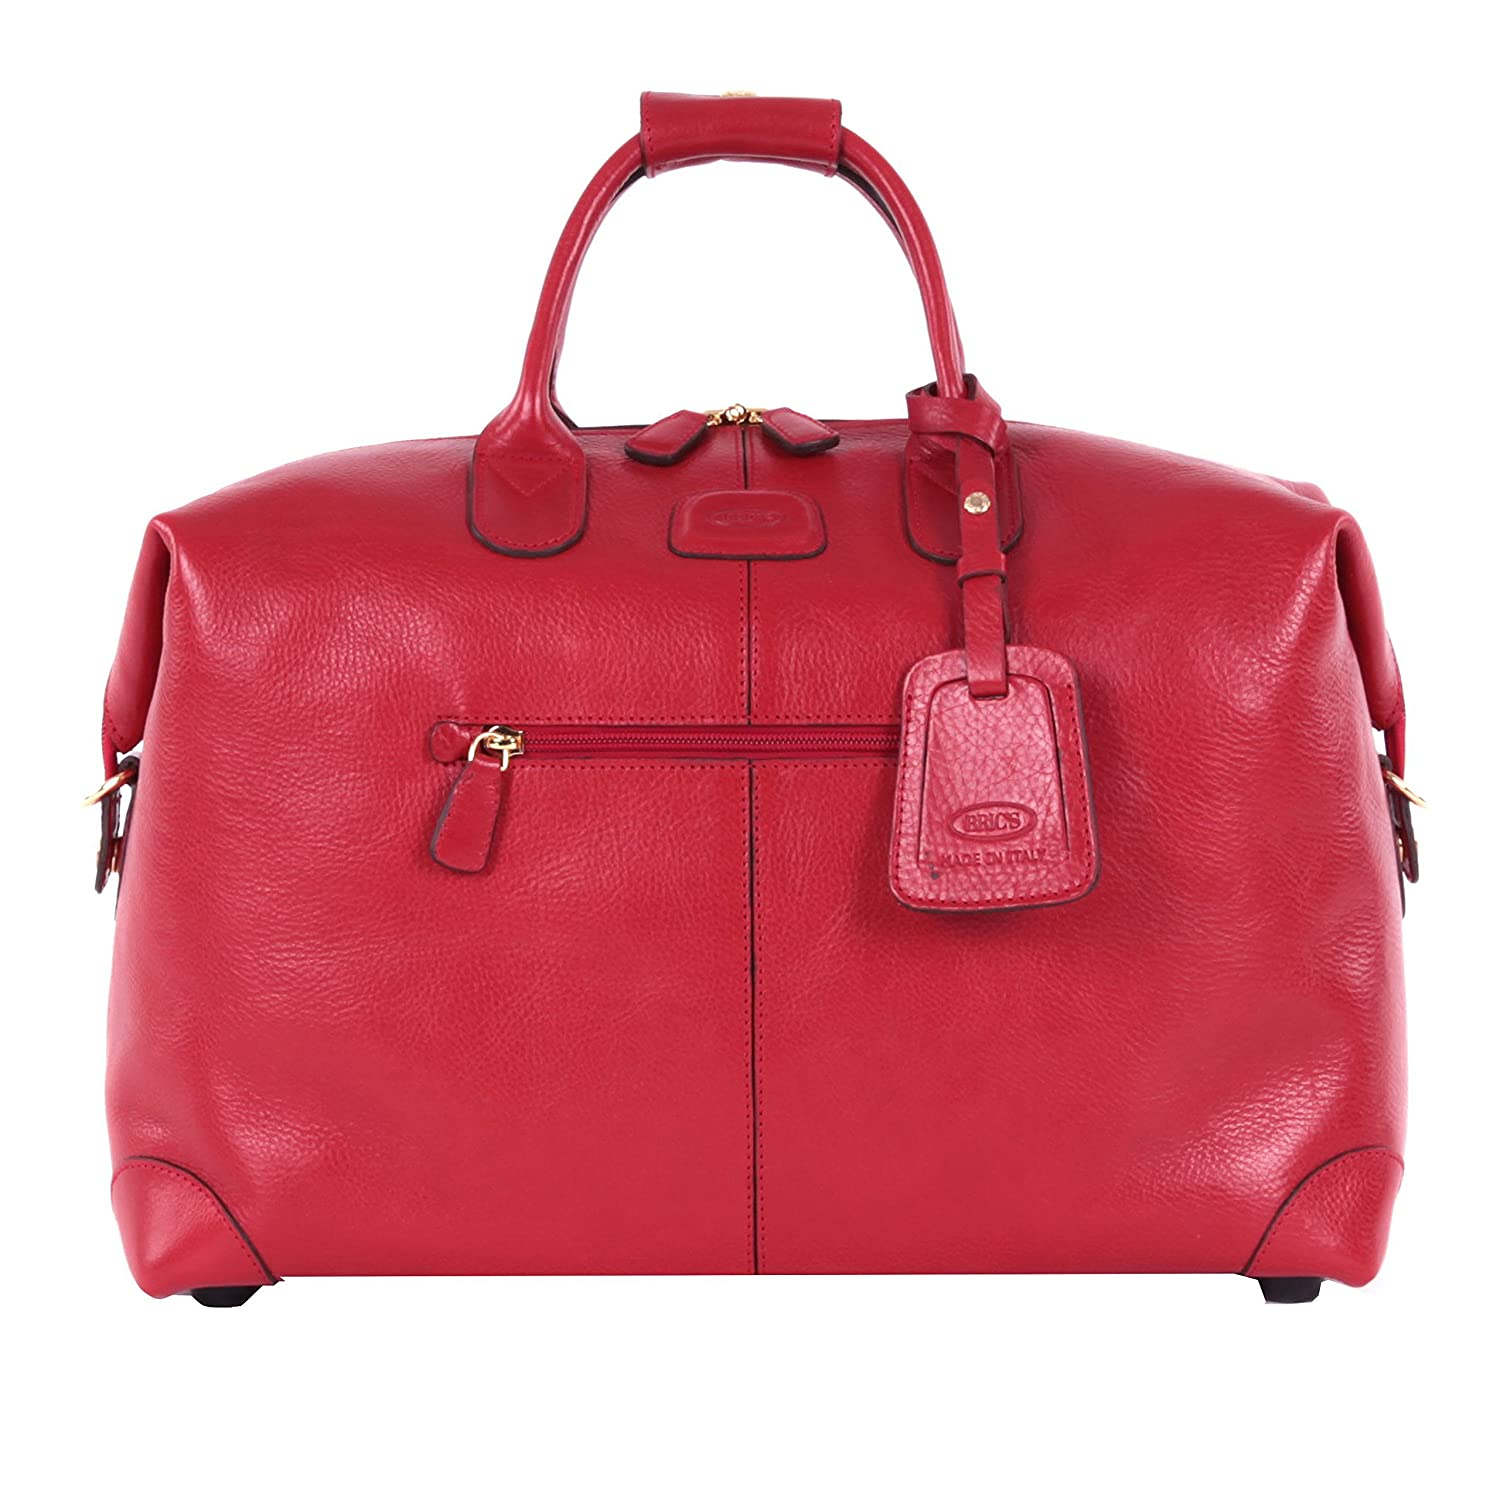 Bric's Luggage Life Pelle 18 Inch Cargo Duffle (Red) good